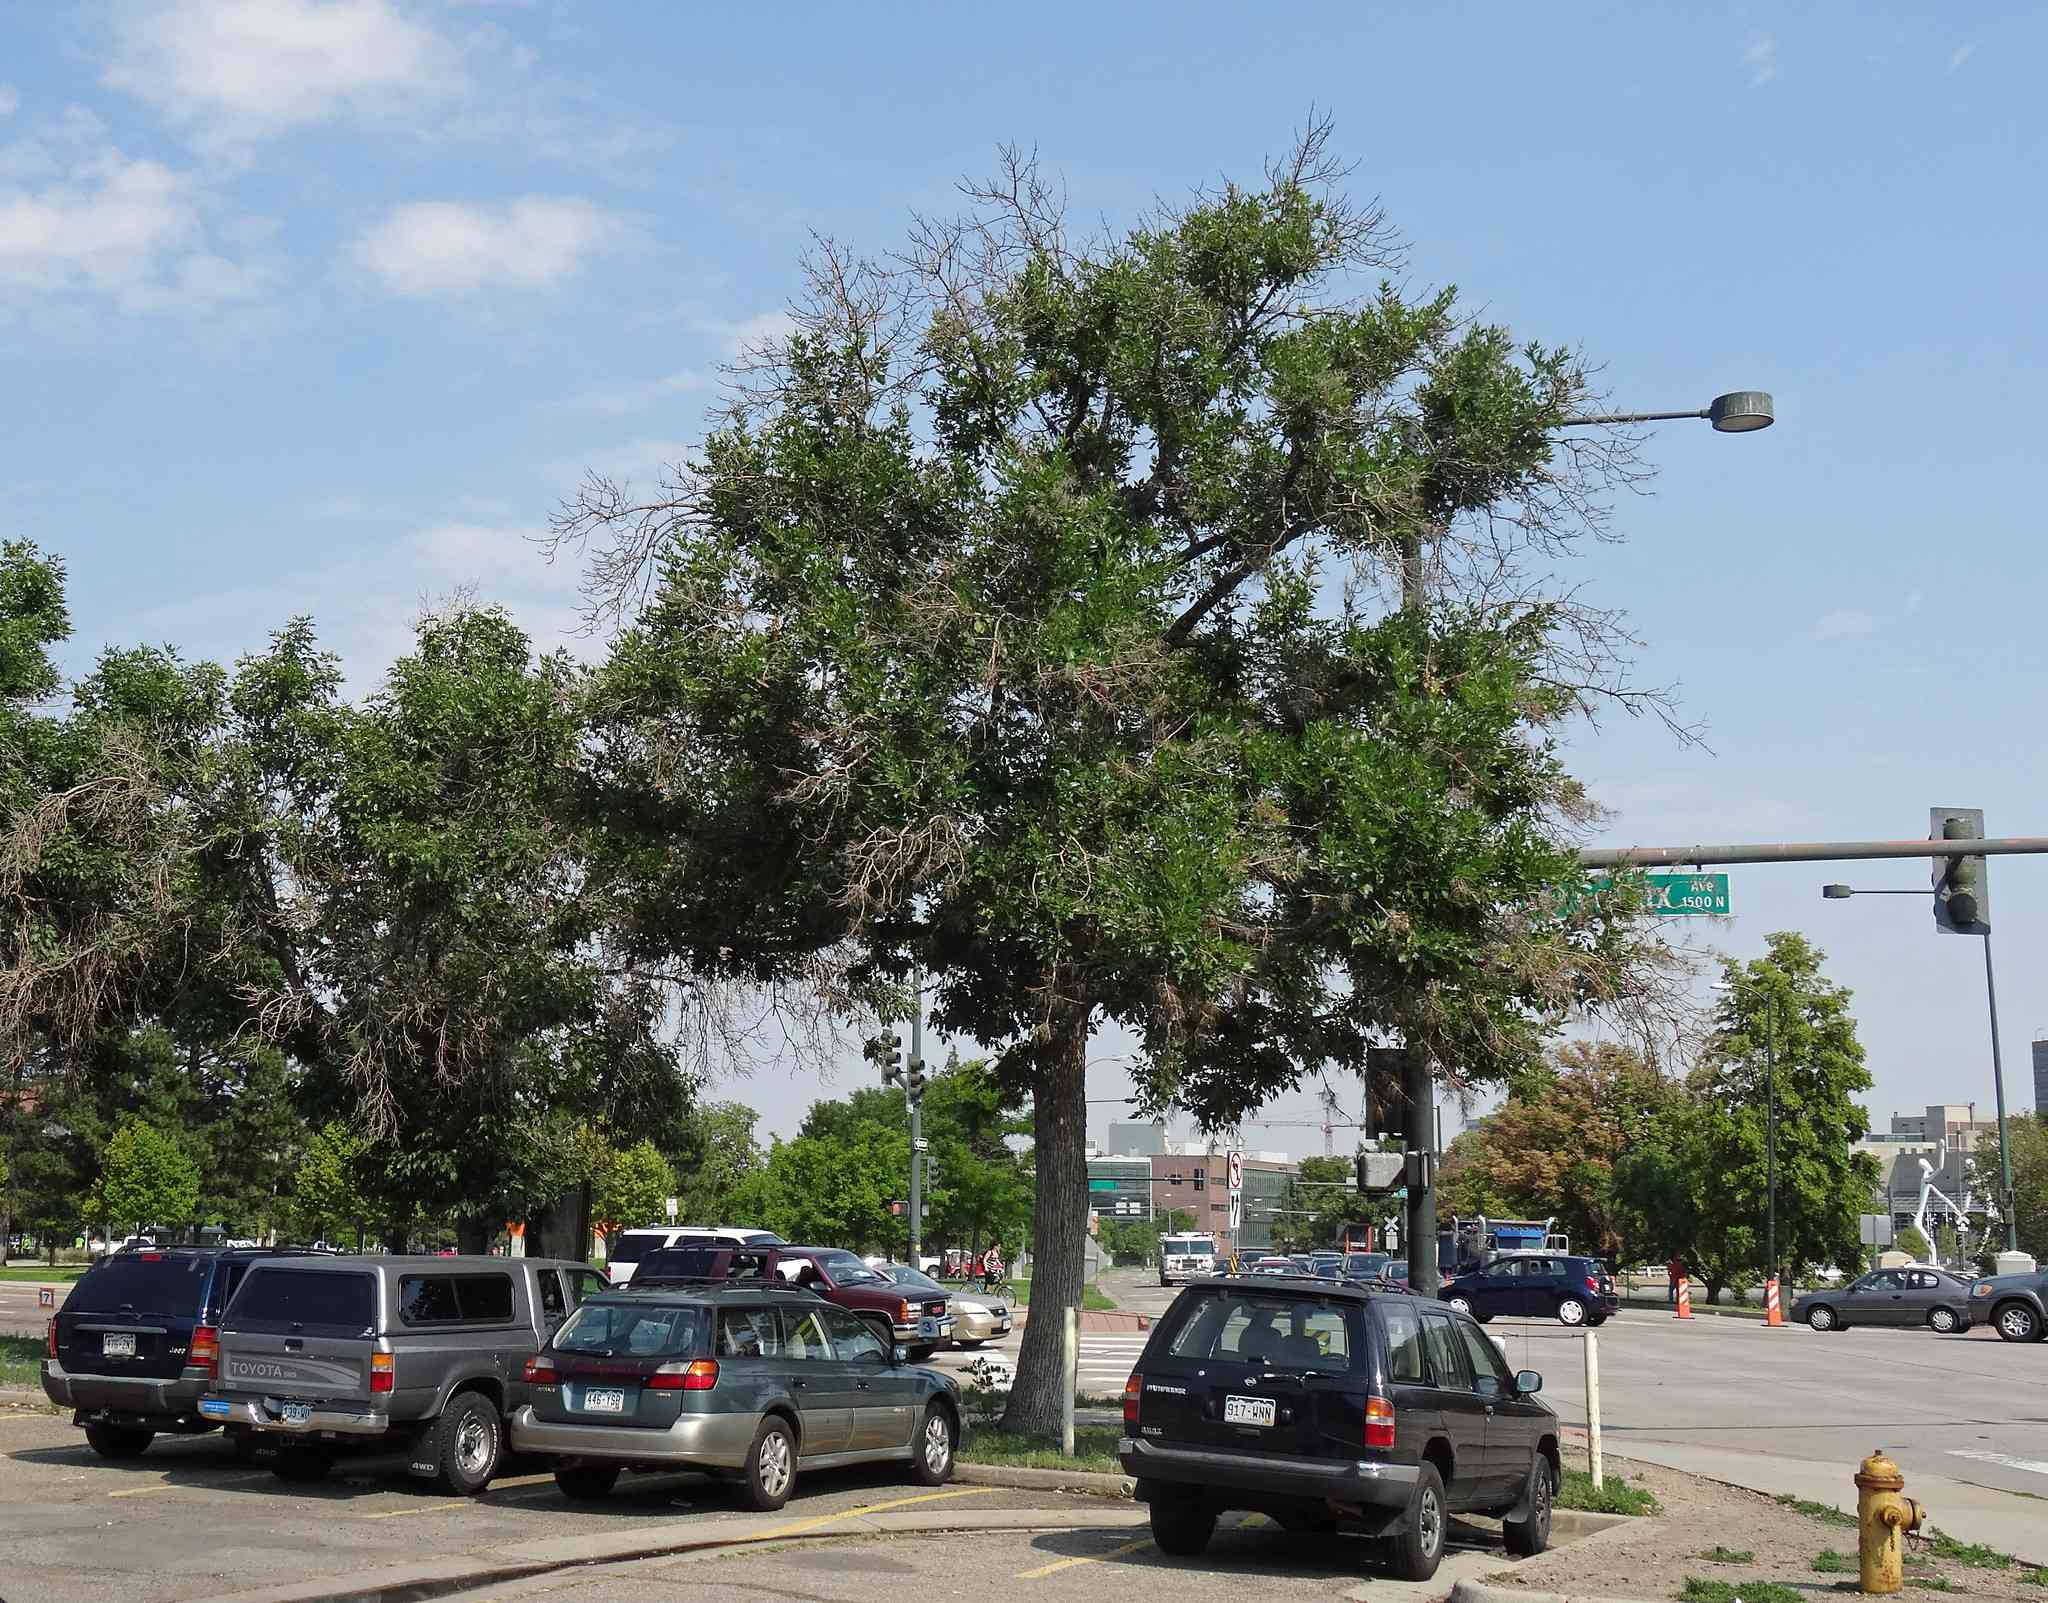 A Green Ash tree in a parking lot.